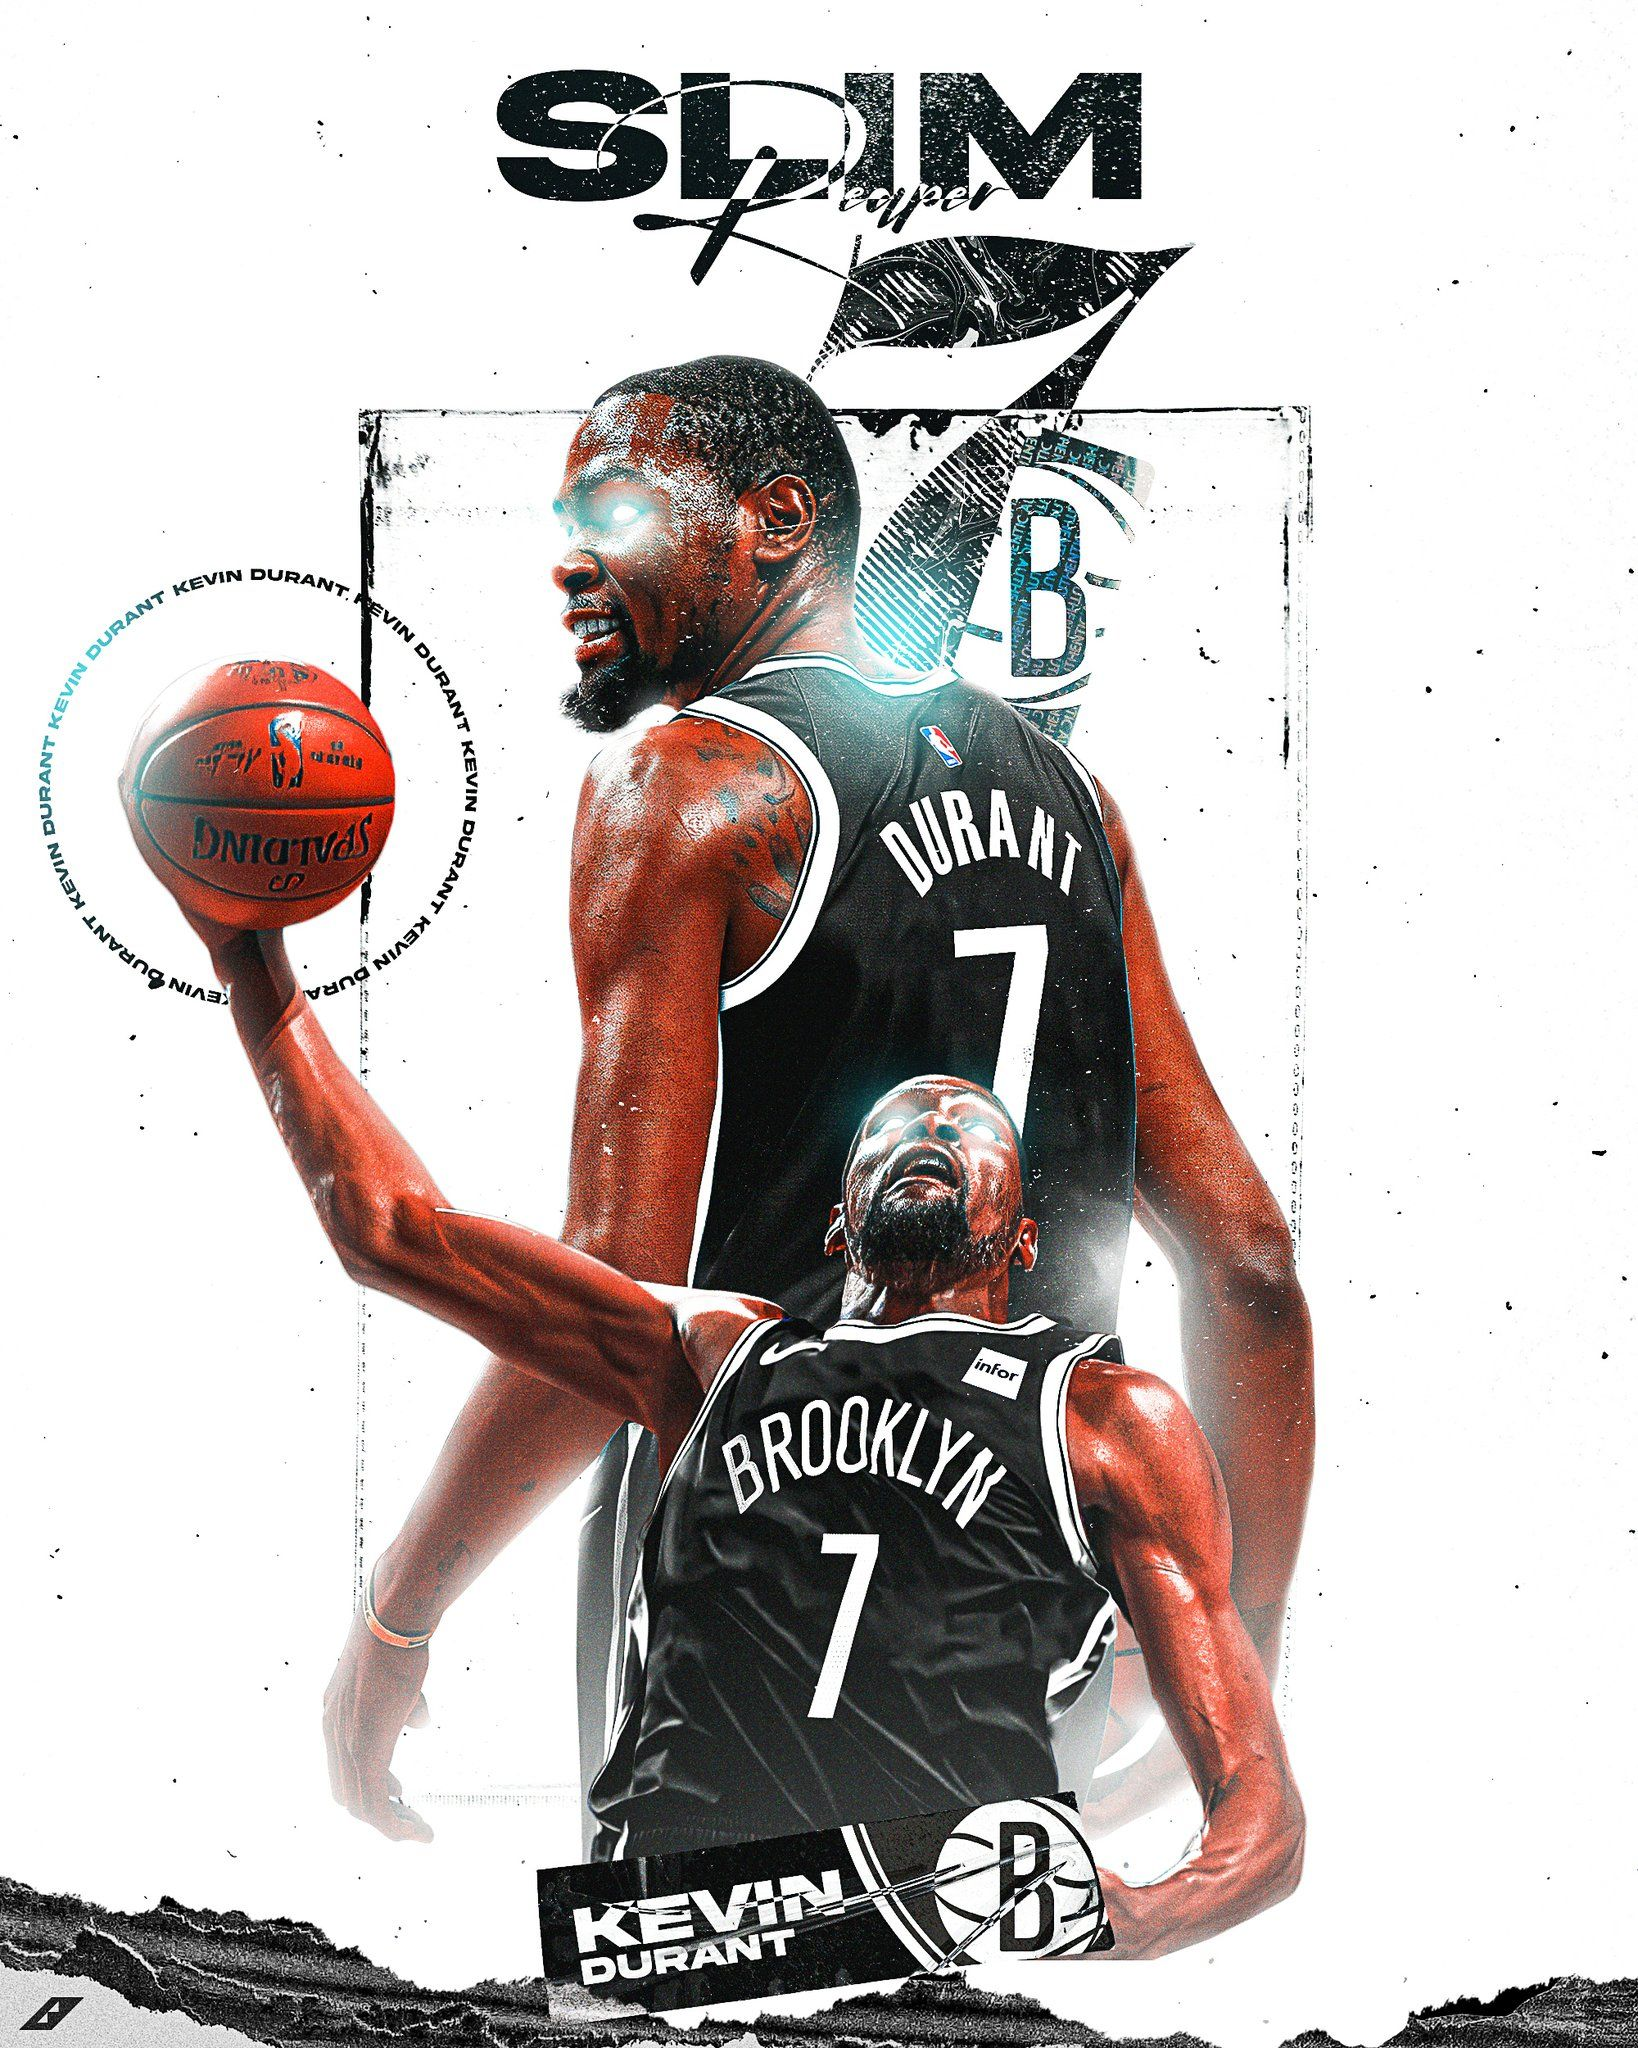 Boosee Prod On Twitter In 2021 Kevin Durant Wallpapers Kevin Durant Posters Kevin Durant